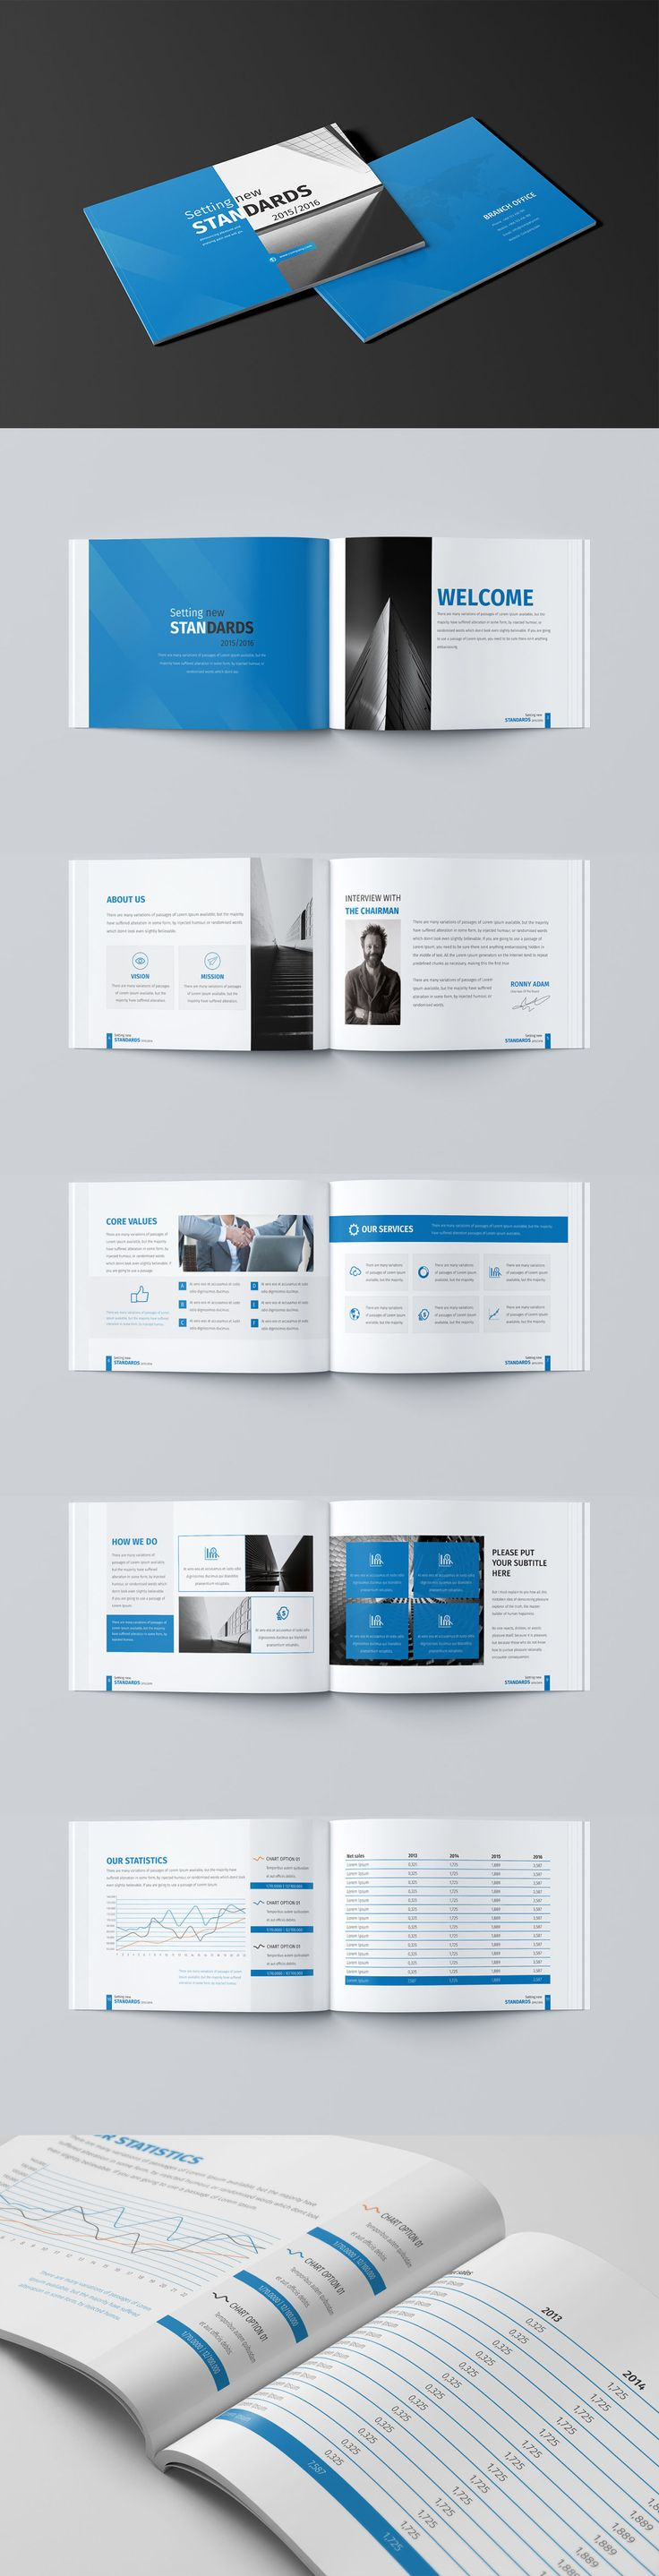 Mini Business Brochure 12 Pages A5 Template InDesign INDD